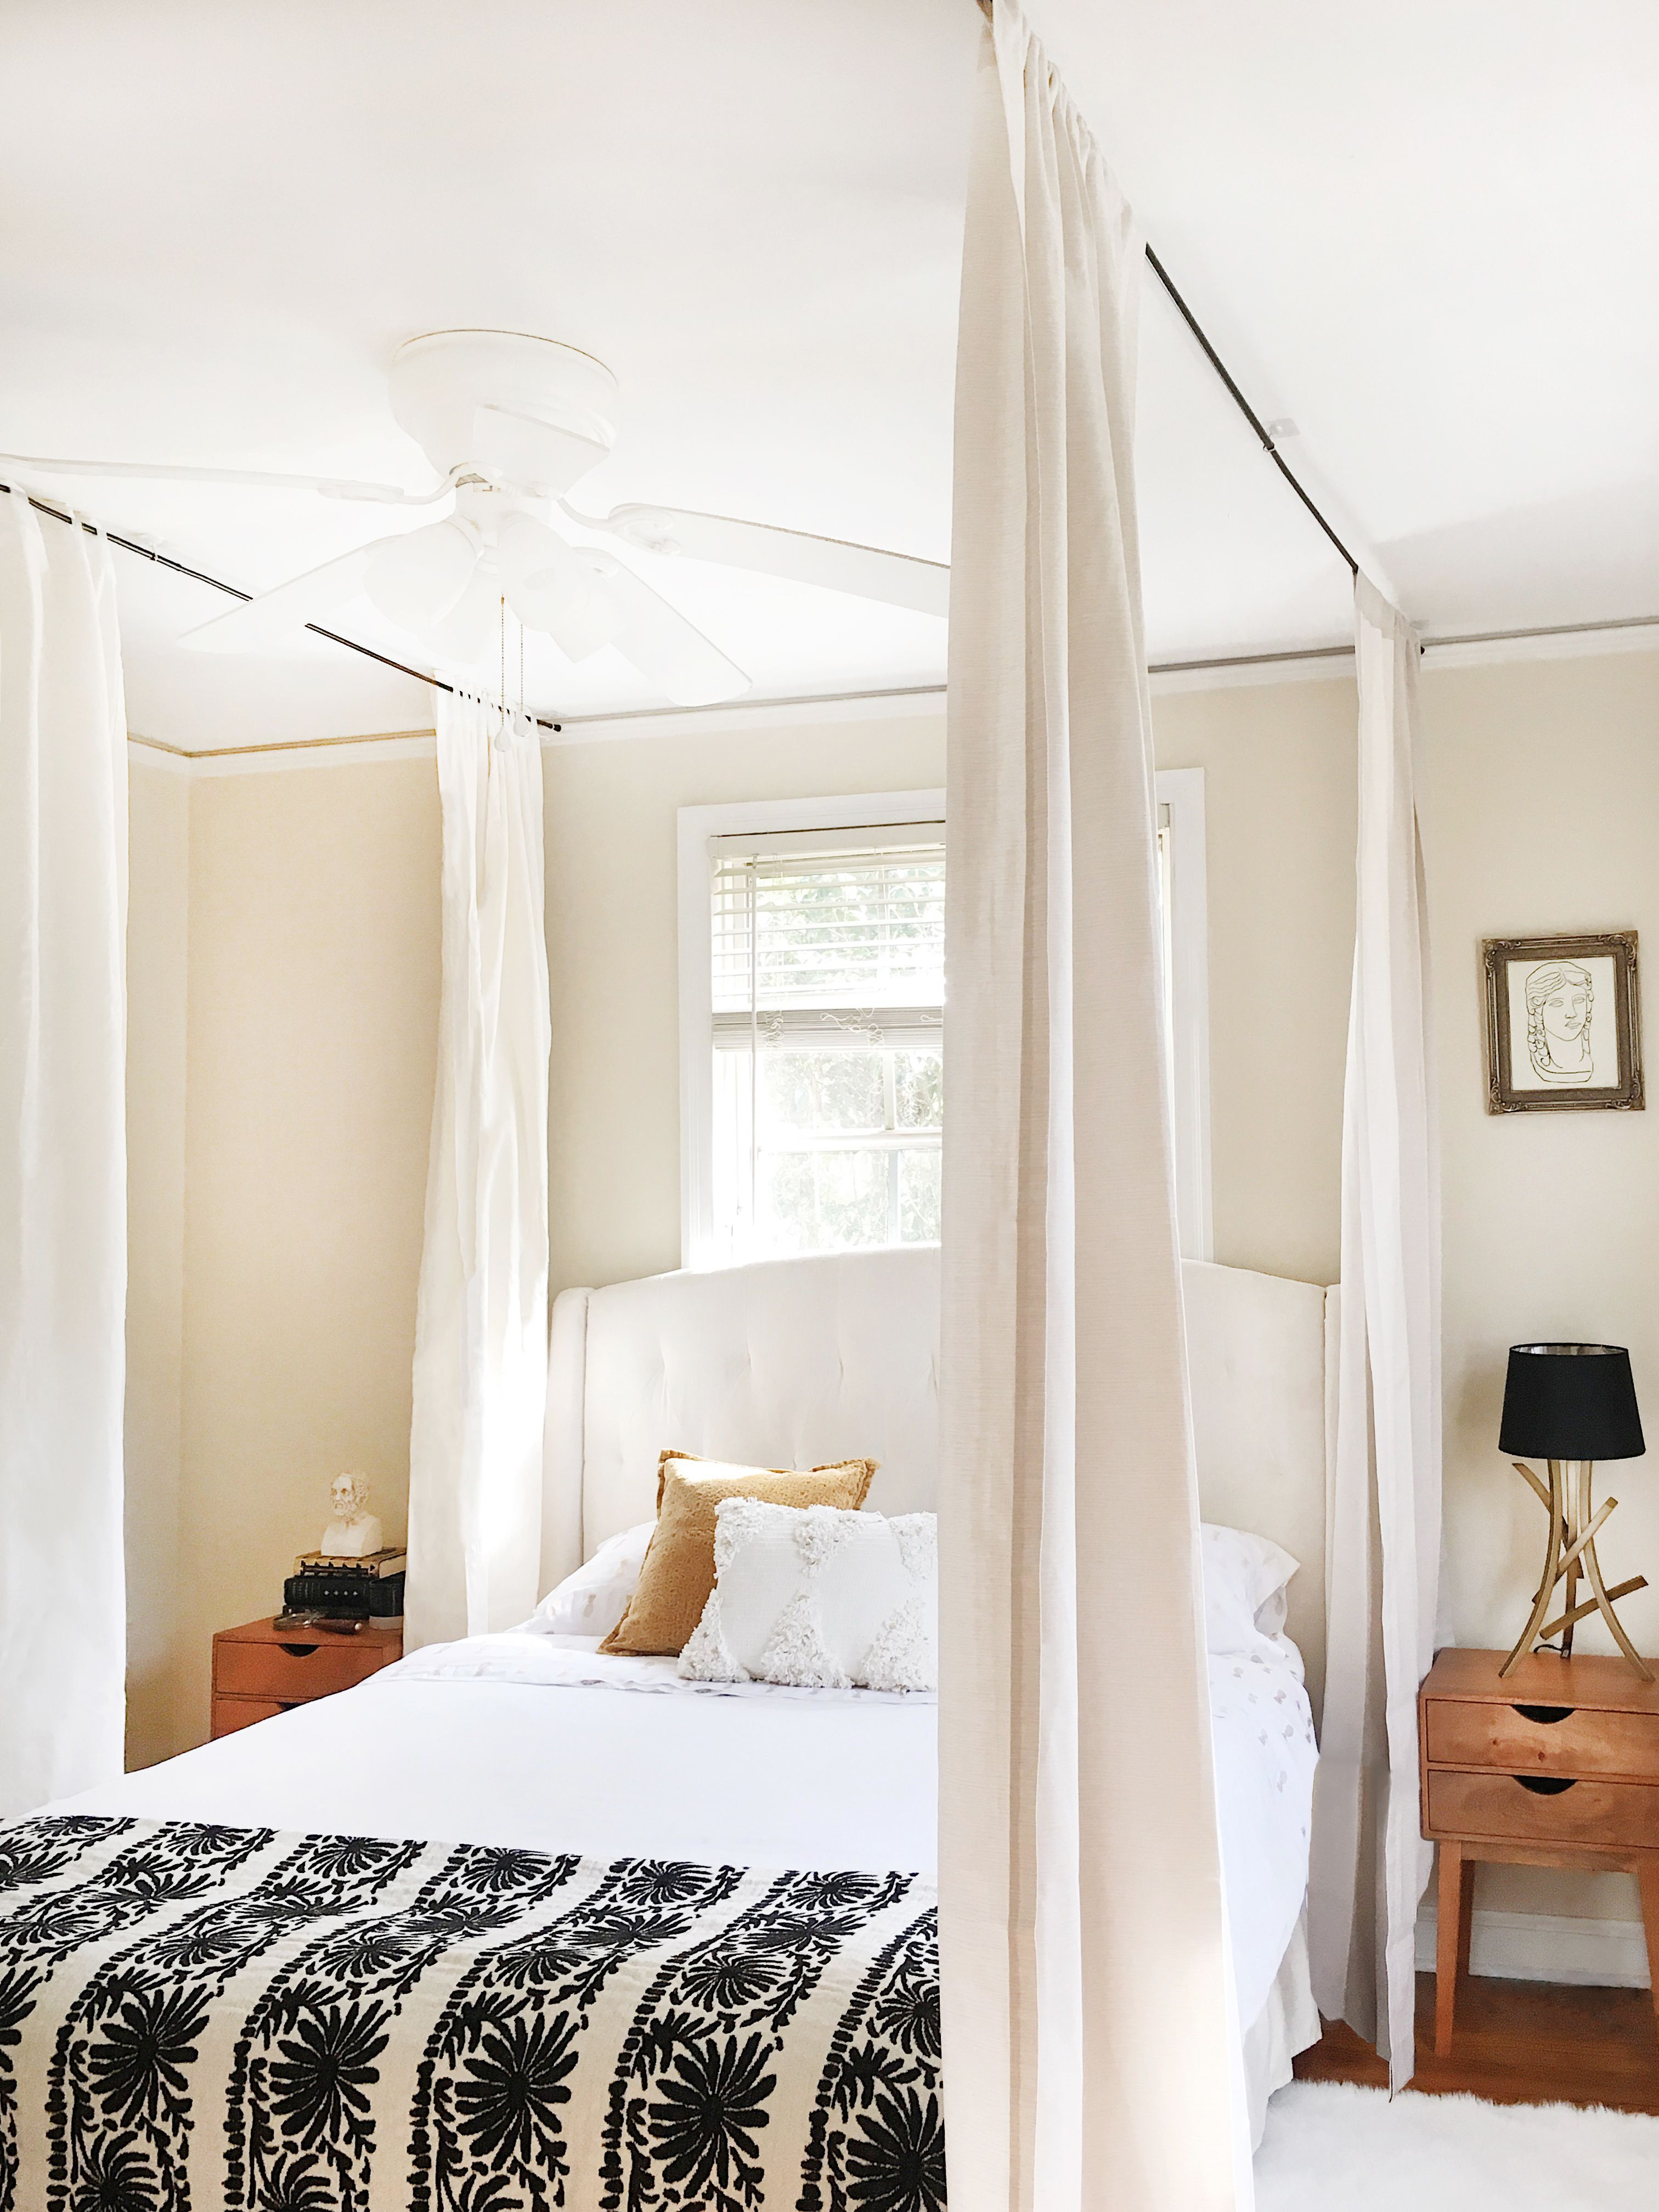 How To Hang A Canopy From The Ceiling Without Drilling Holes Layjao